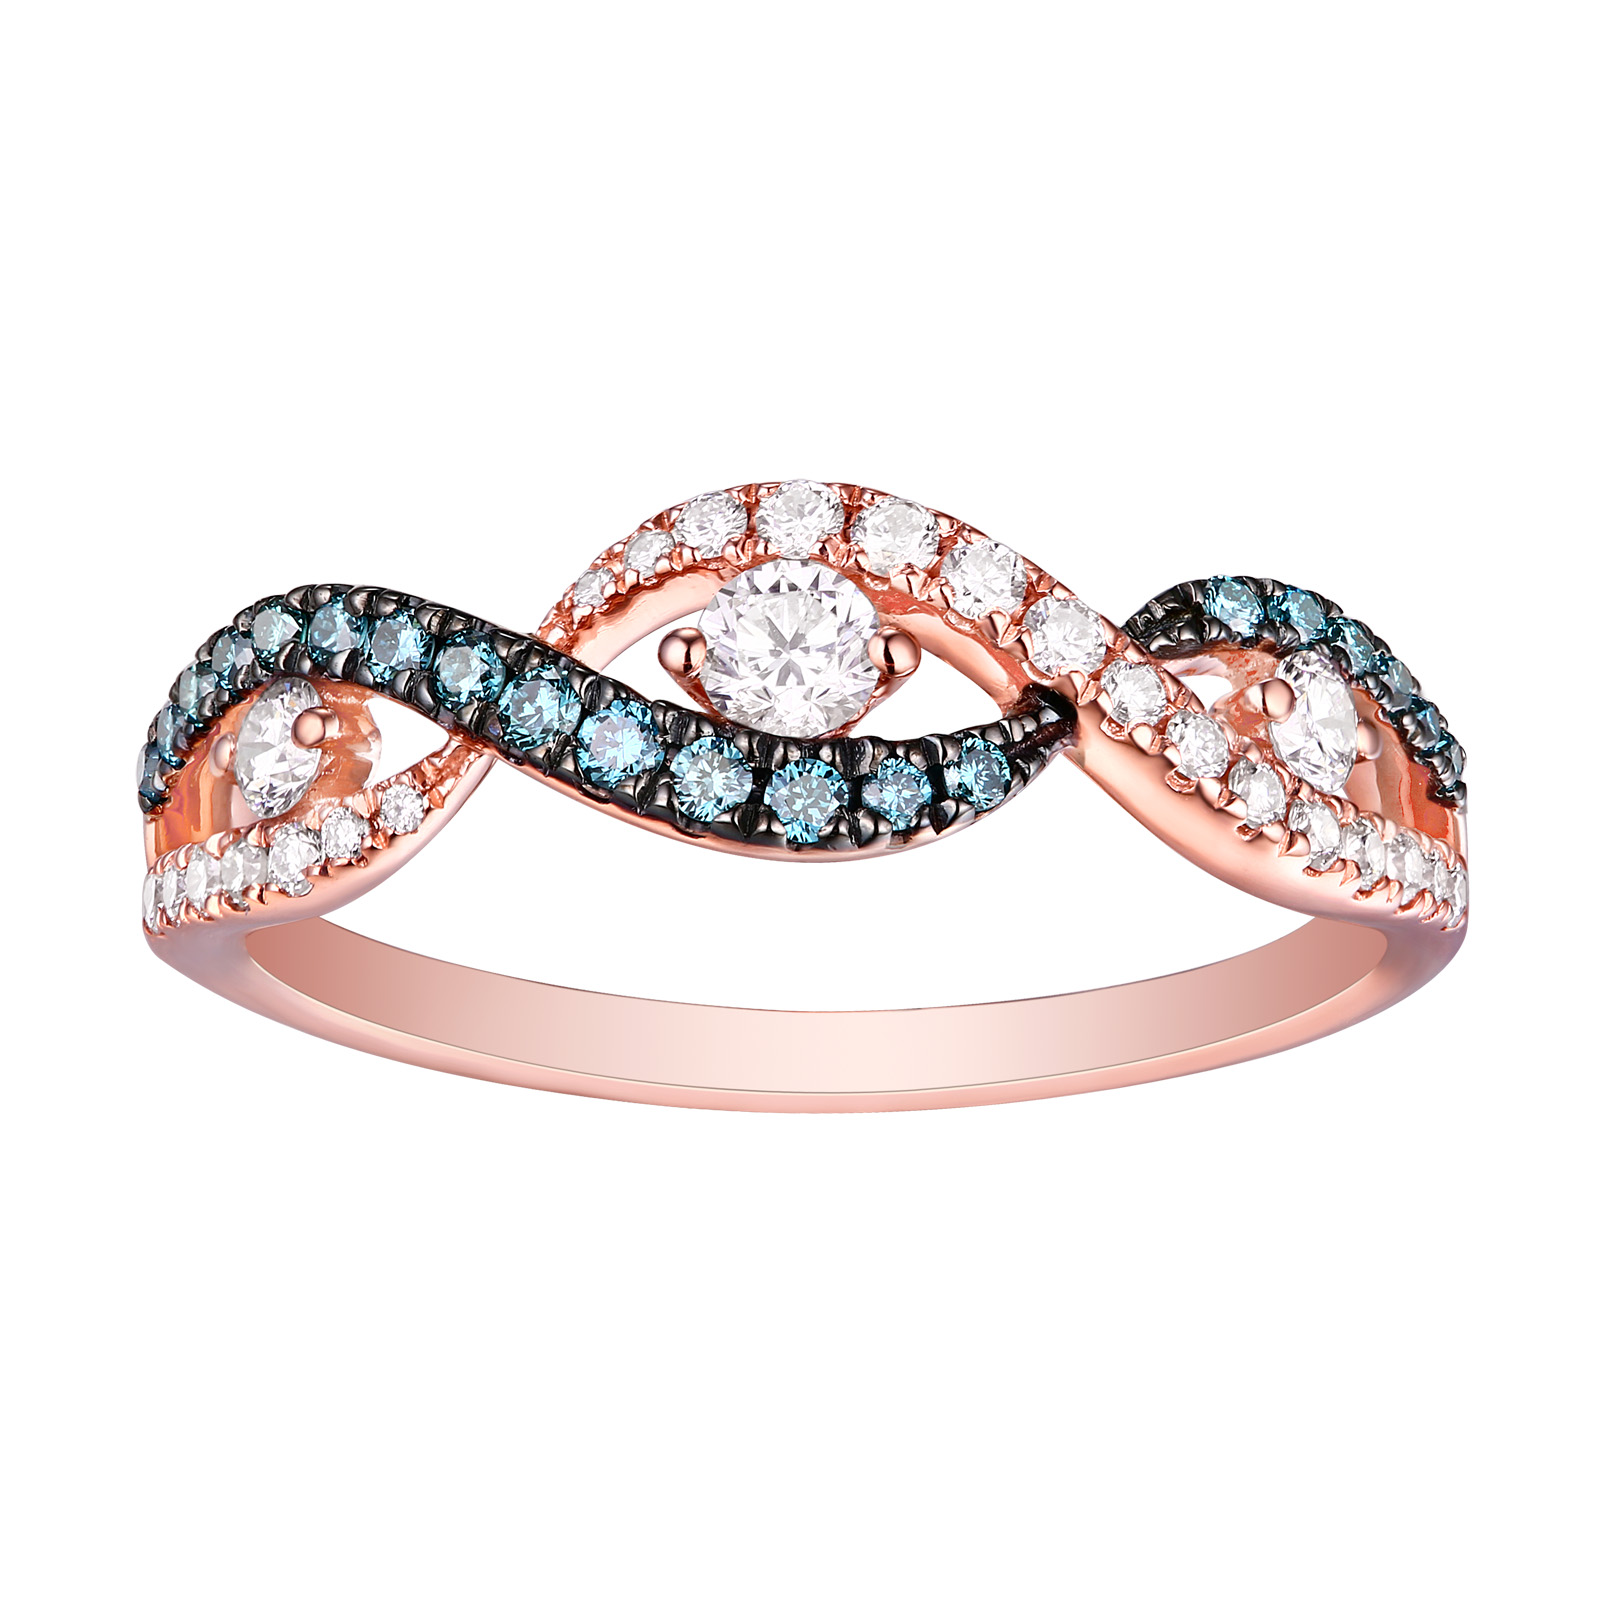 R26224WIC- 14K Rose Gold Diamond Ring , 0.46 TCW